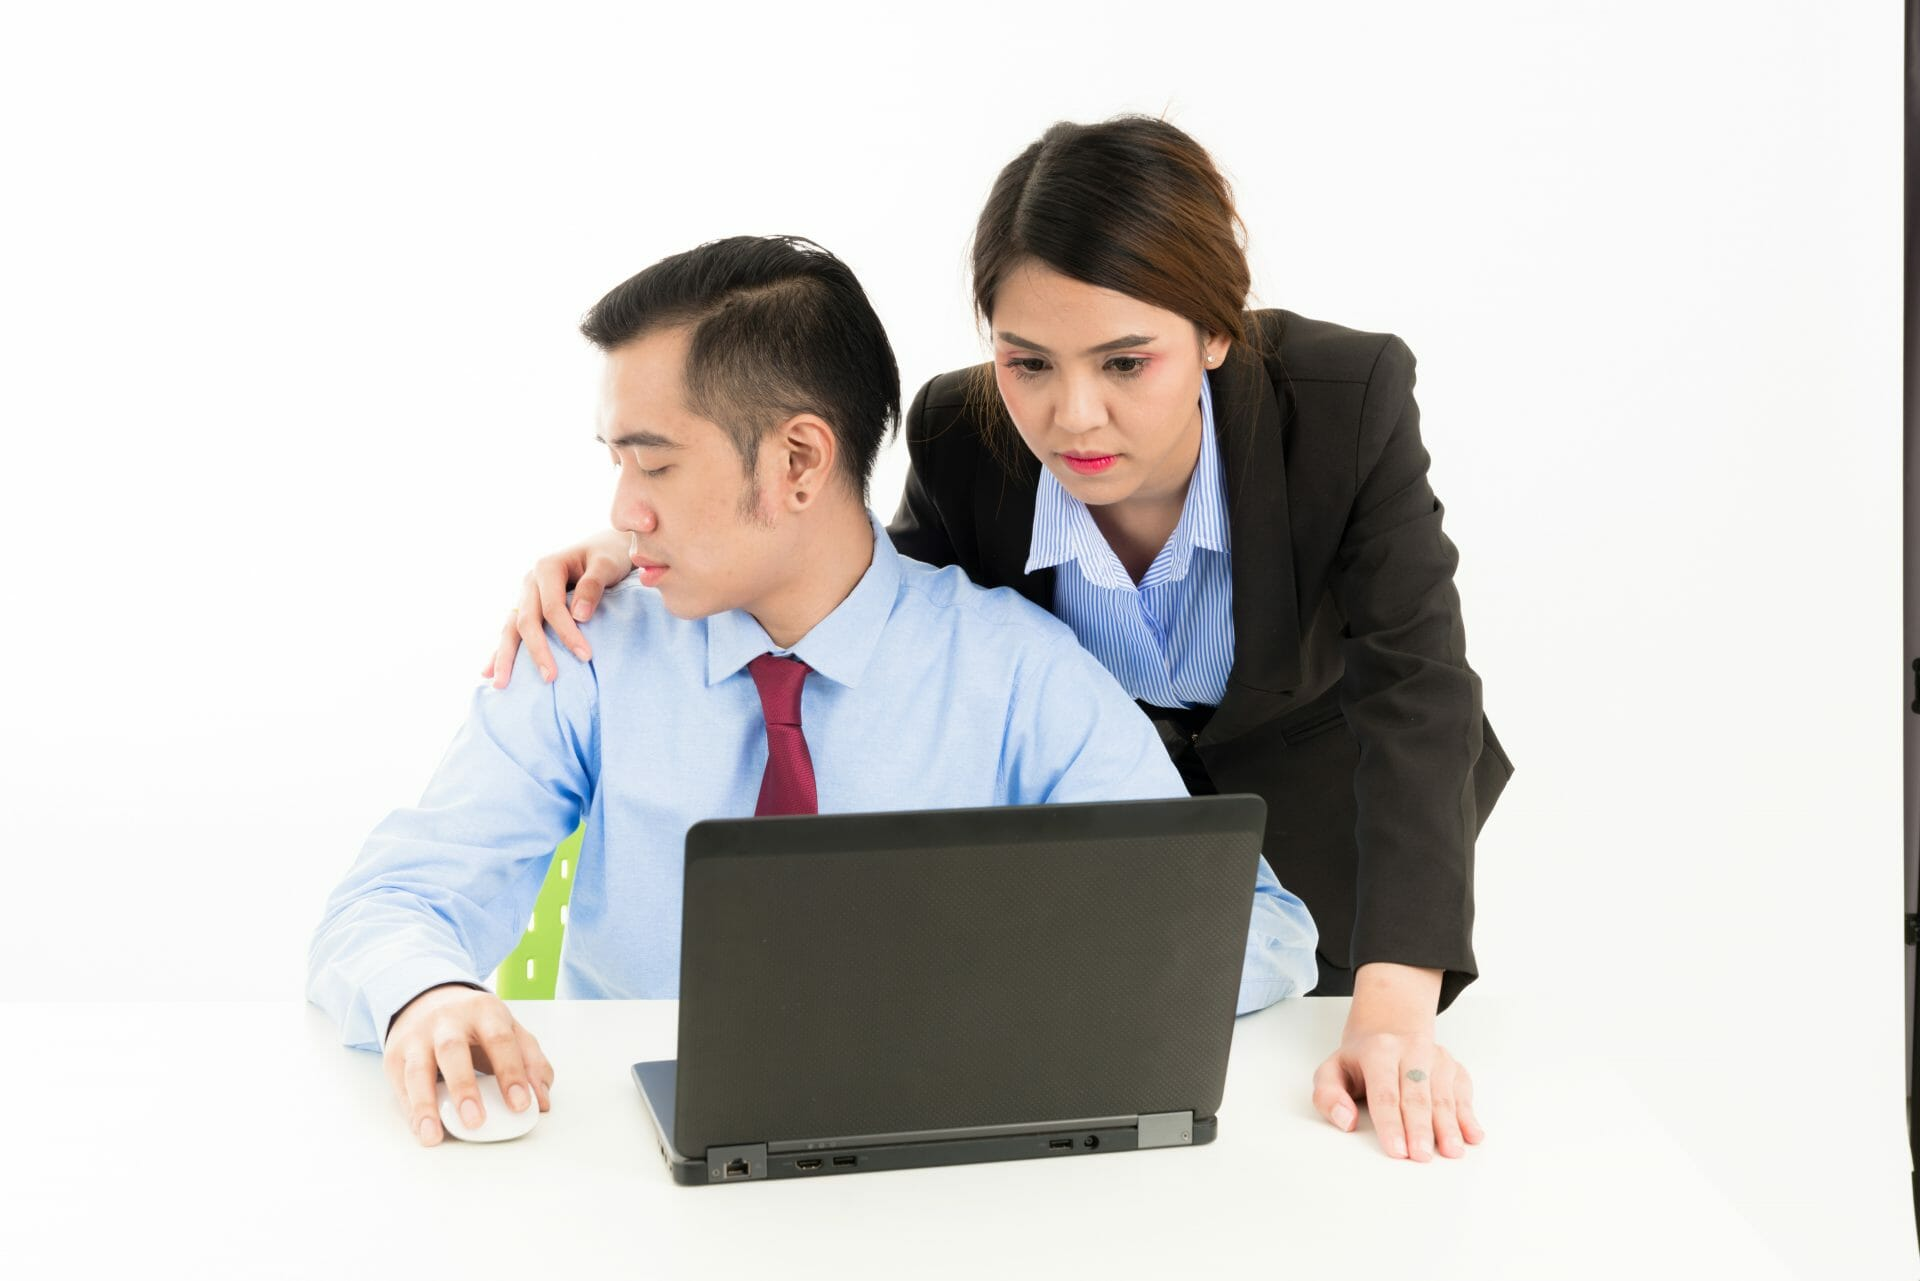 Gender Discrimination in the Workplace: Do Men Have Rights?